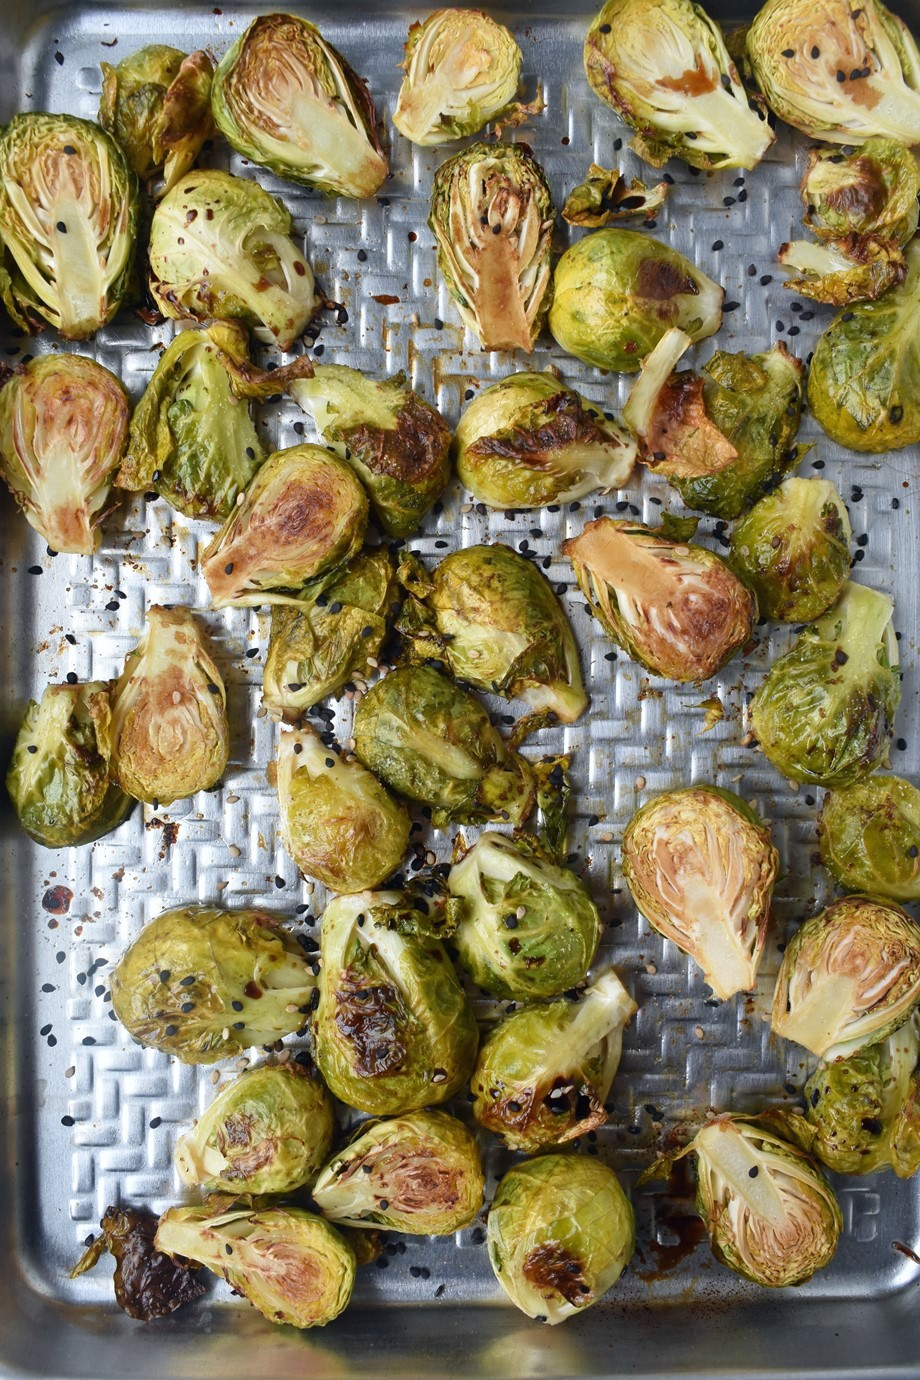 Asian Roasted Brussels Sprouts are loaded with garlic, onion and soy sauce flavors and are super crispy and delicious for the perfect side dish! #brusselssprouts #sidedish #asian #vegetables #healthy #cleaneating #roastedveggies